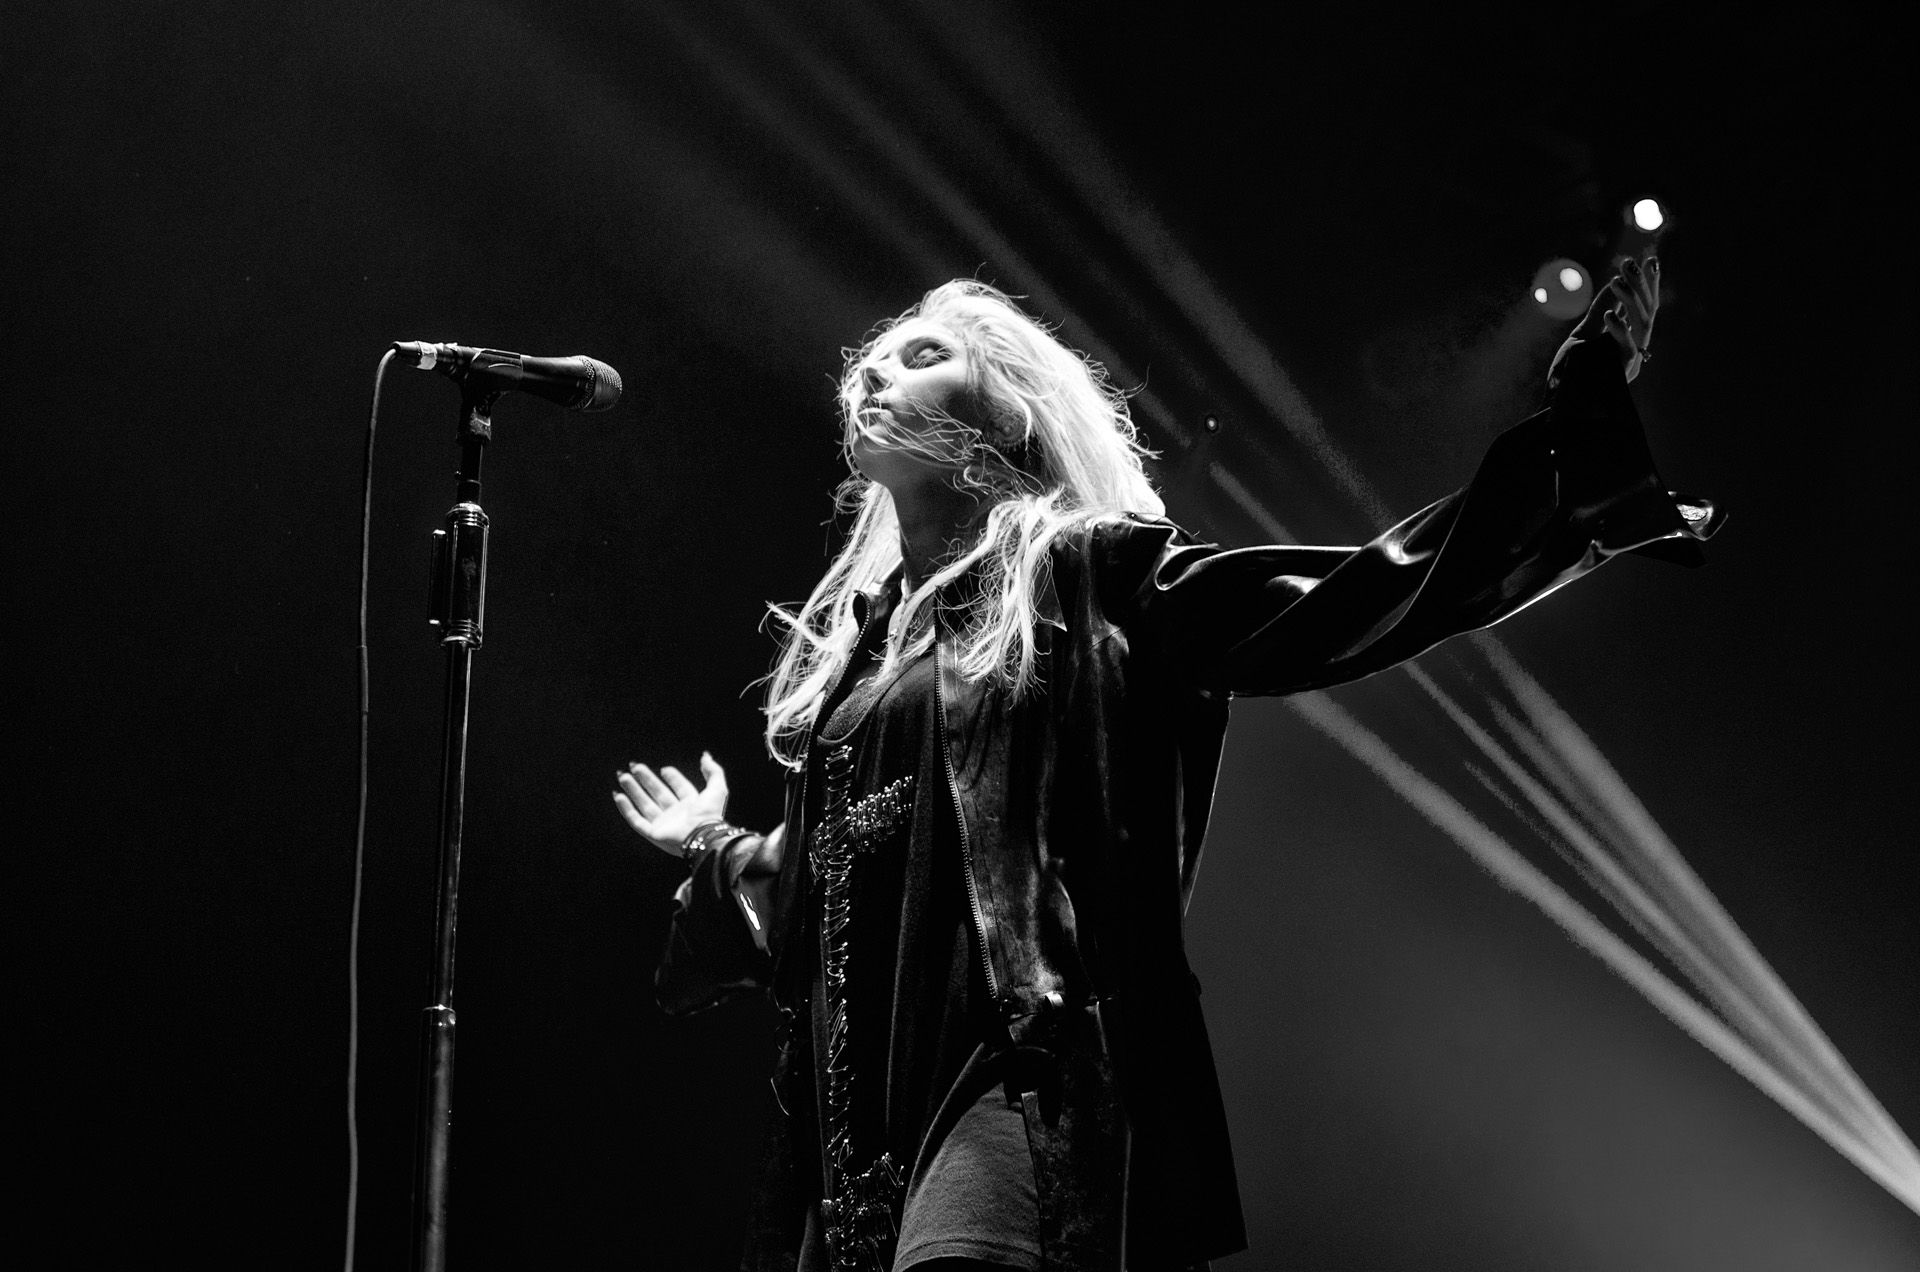 The Pretty Reckless // Photo by Mick Micktorick